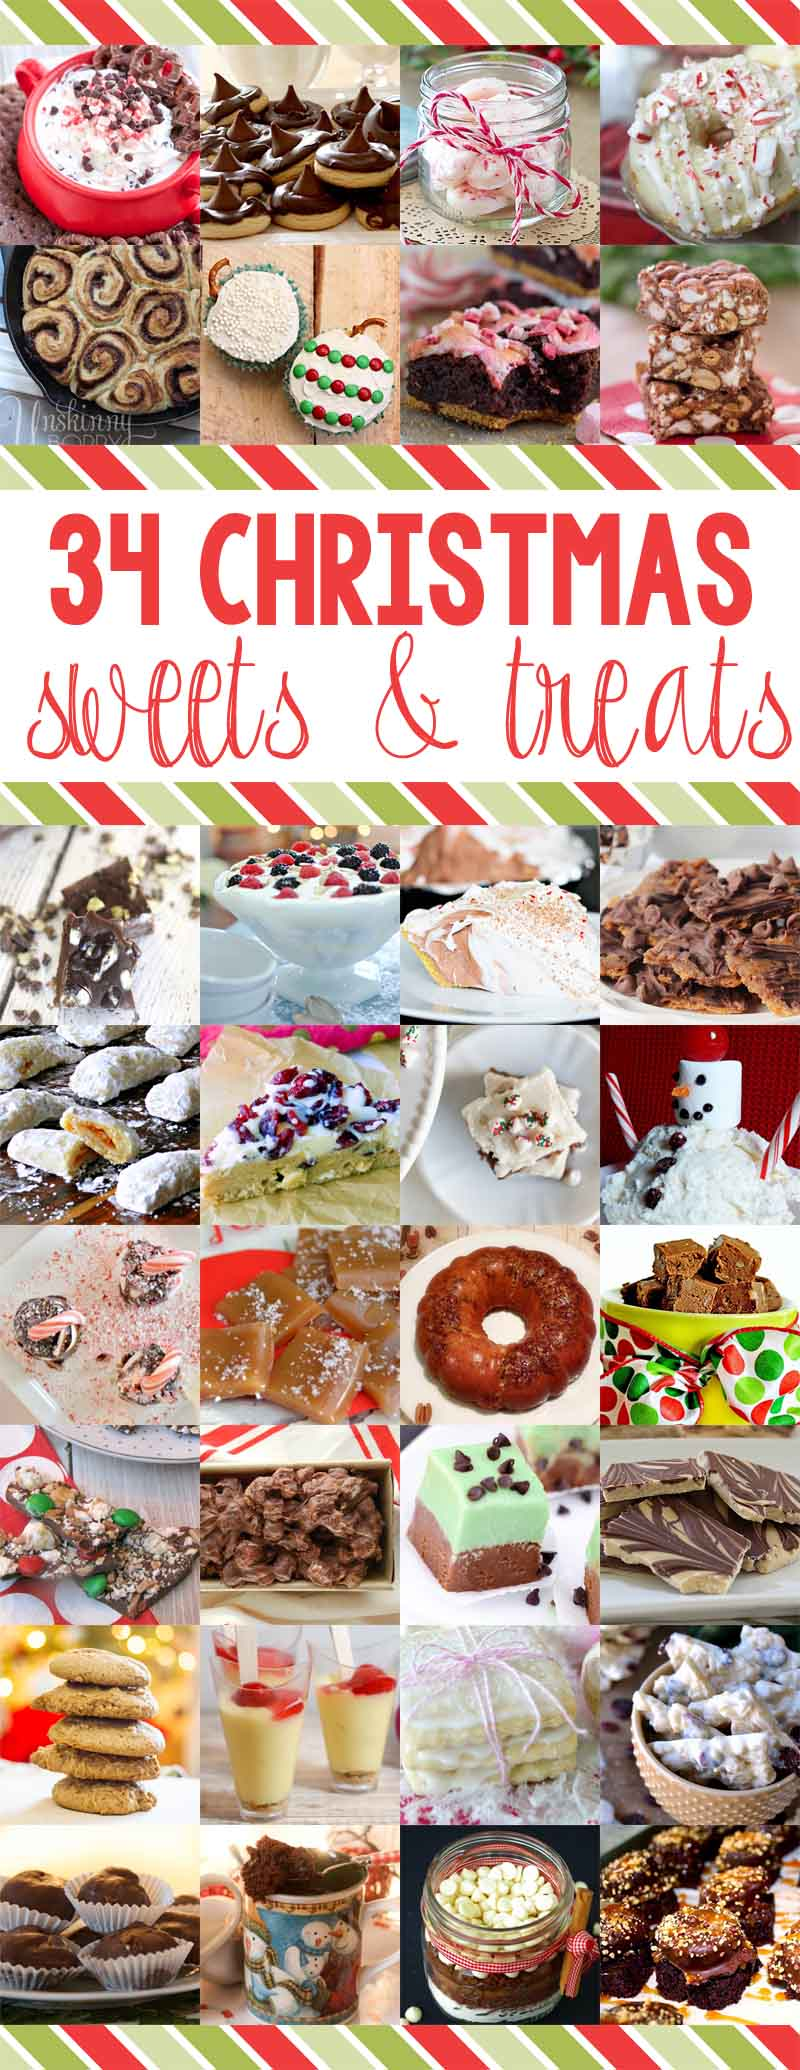 http://www.lemontreedwelling.com/wp-content/uploads/2014/12/34-Christmas-Treats-Sweets.jpg